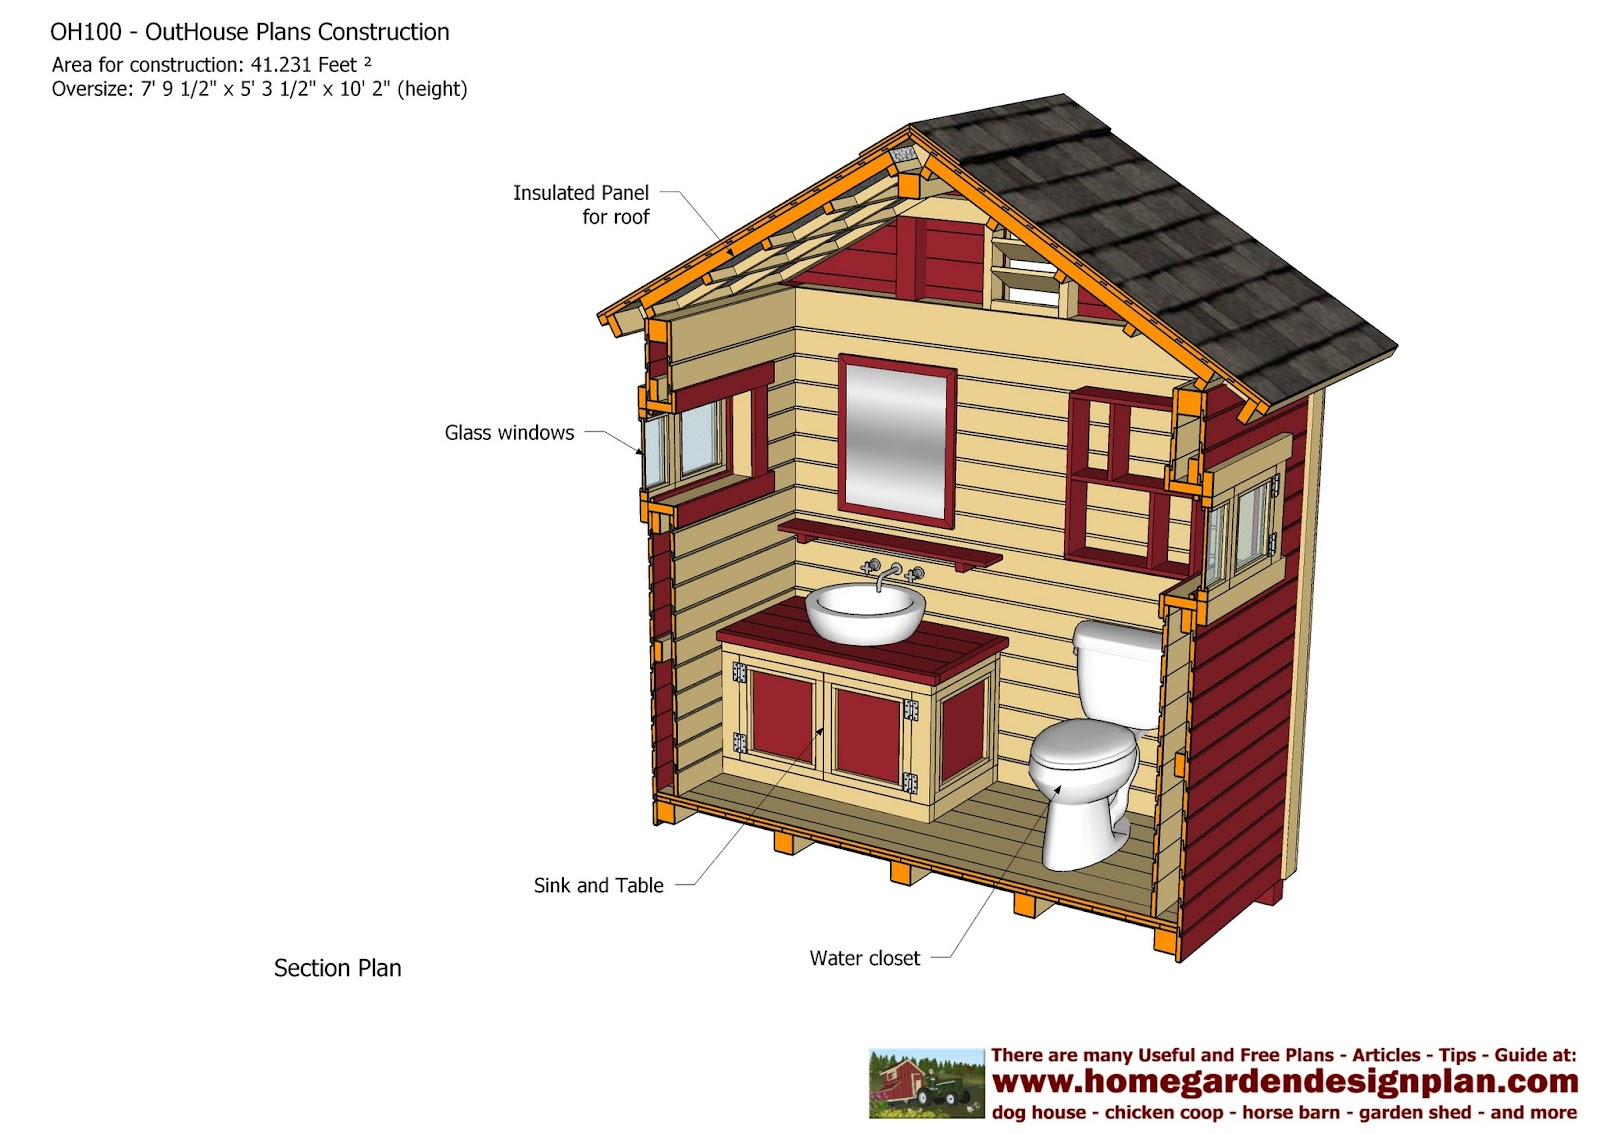 23 outhouse blueprints ideas house plans 46630 for House construction plans